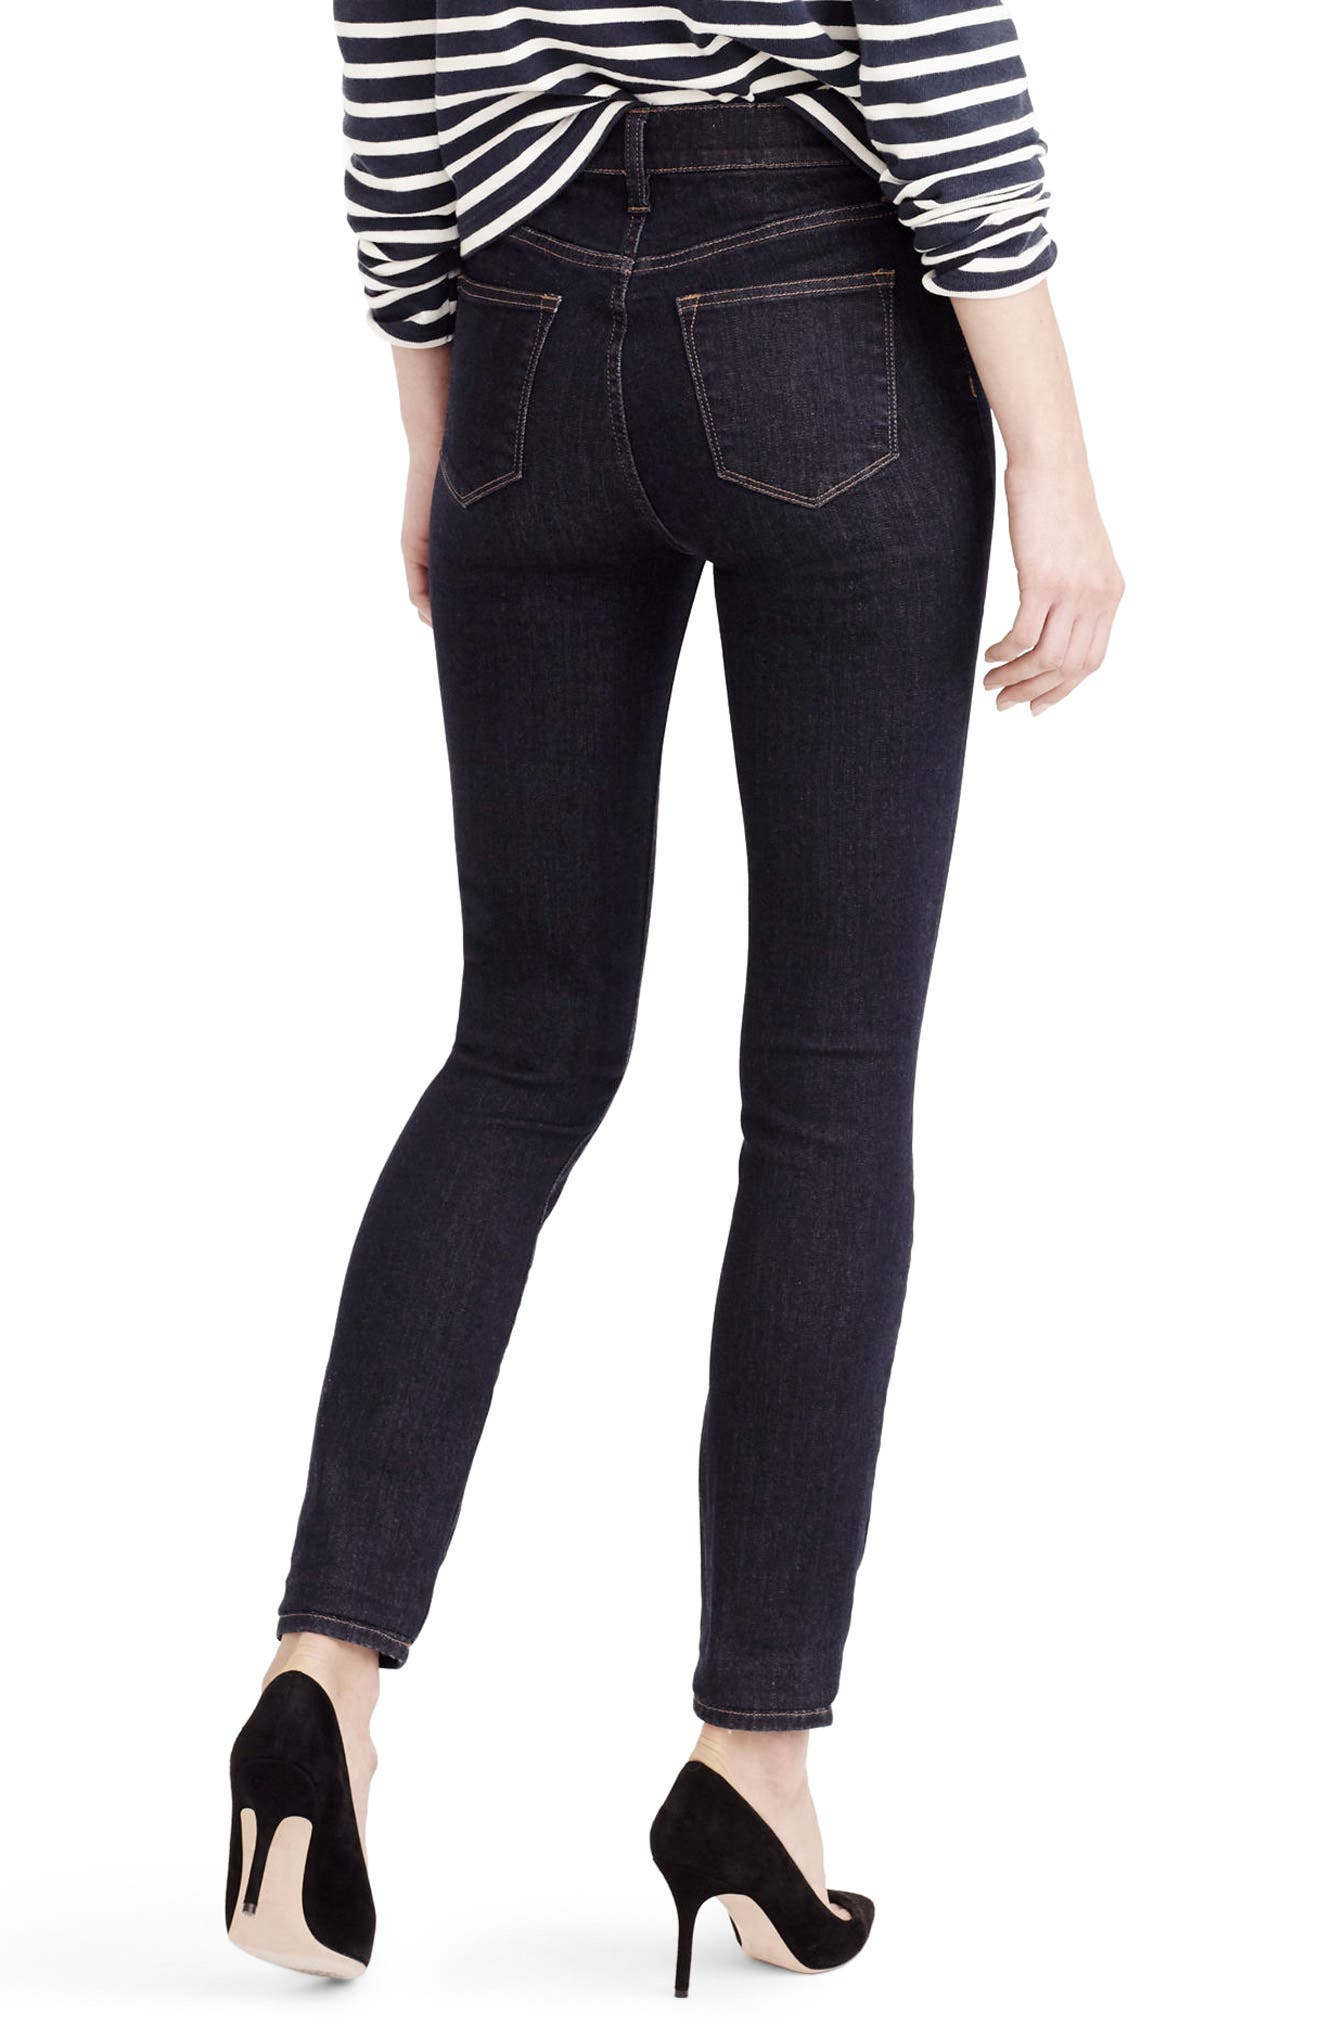 J.Crew Lookout High Rise Jeans,                             Alternate thumbnail 2, color,                             Resin Wash